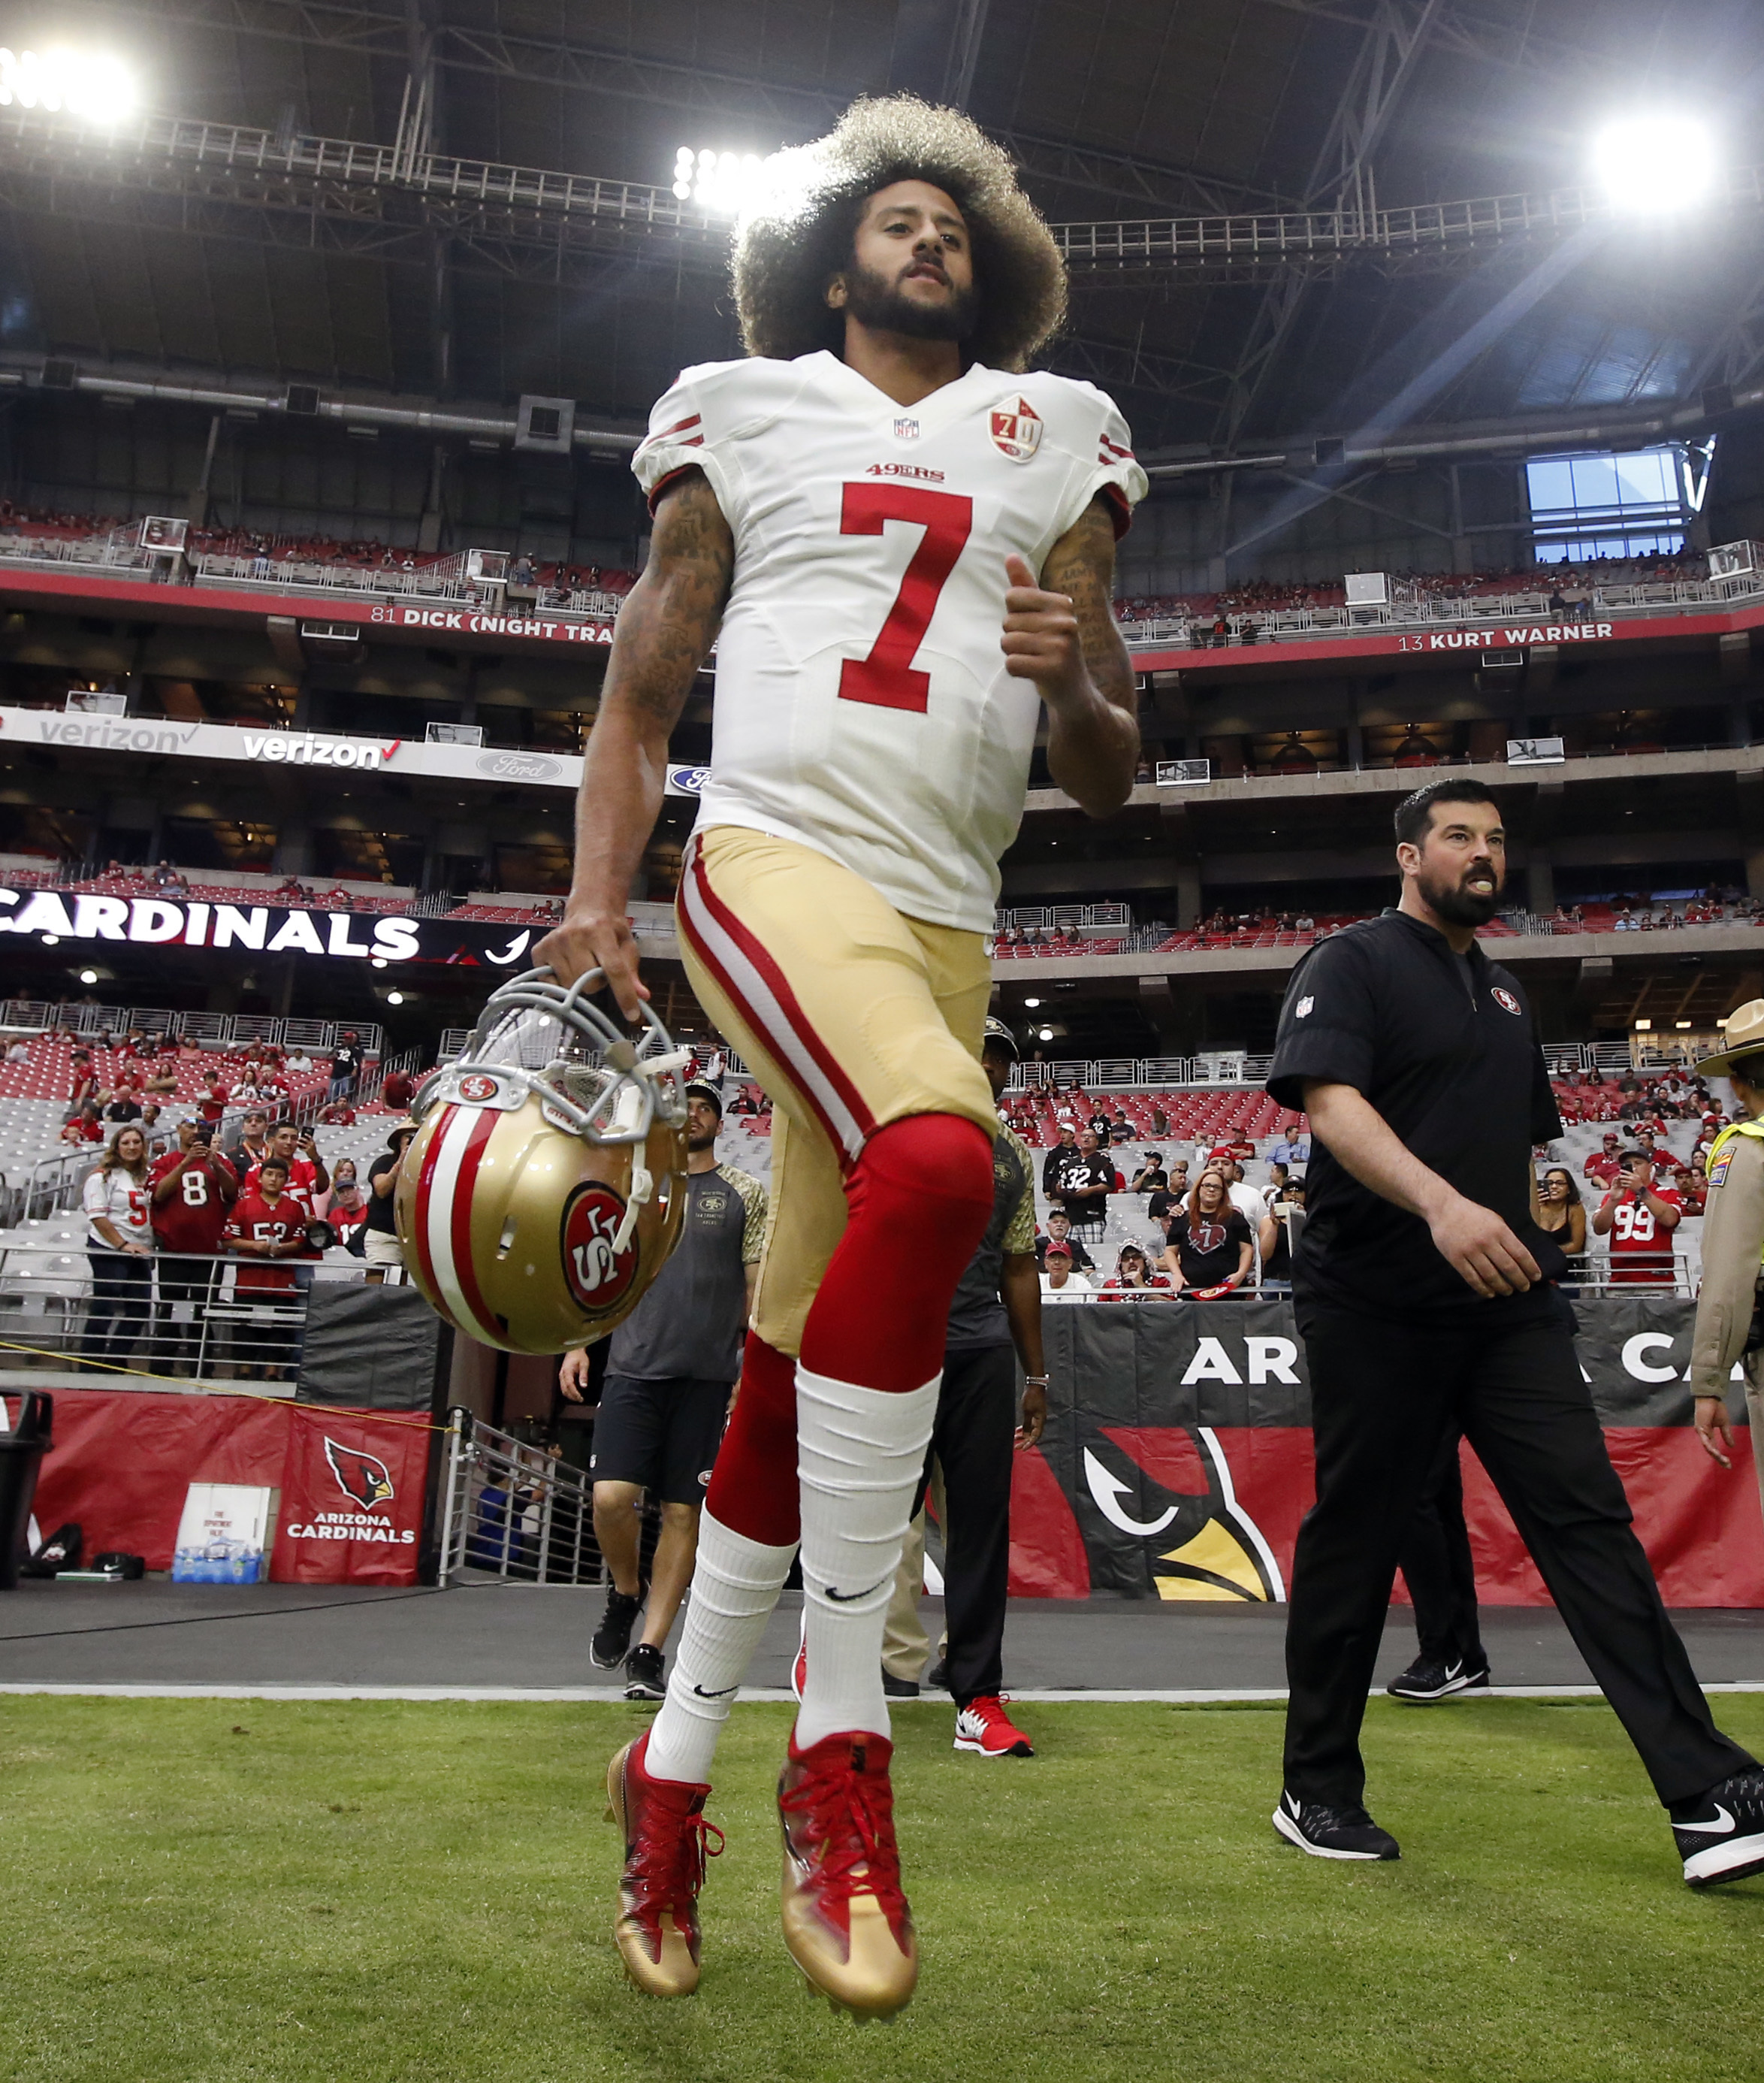 San Francisco 49ers quarterback Colin Kaepernick (7) takes the field prior to an NFL football game against the Arizona Cardinals, Sunday, Nov. 13, 2016, in Glendale, Ariz. (AP Photo/Ross D. Franklin)